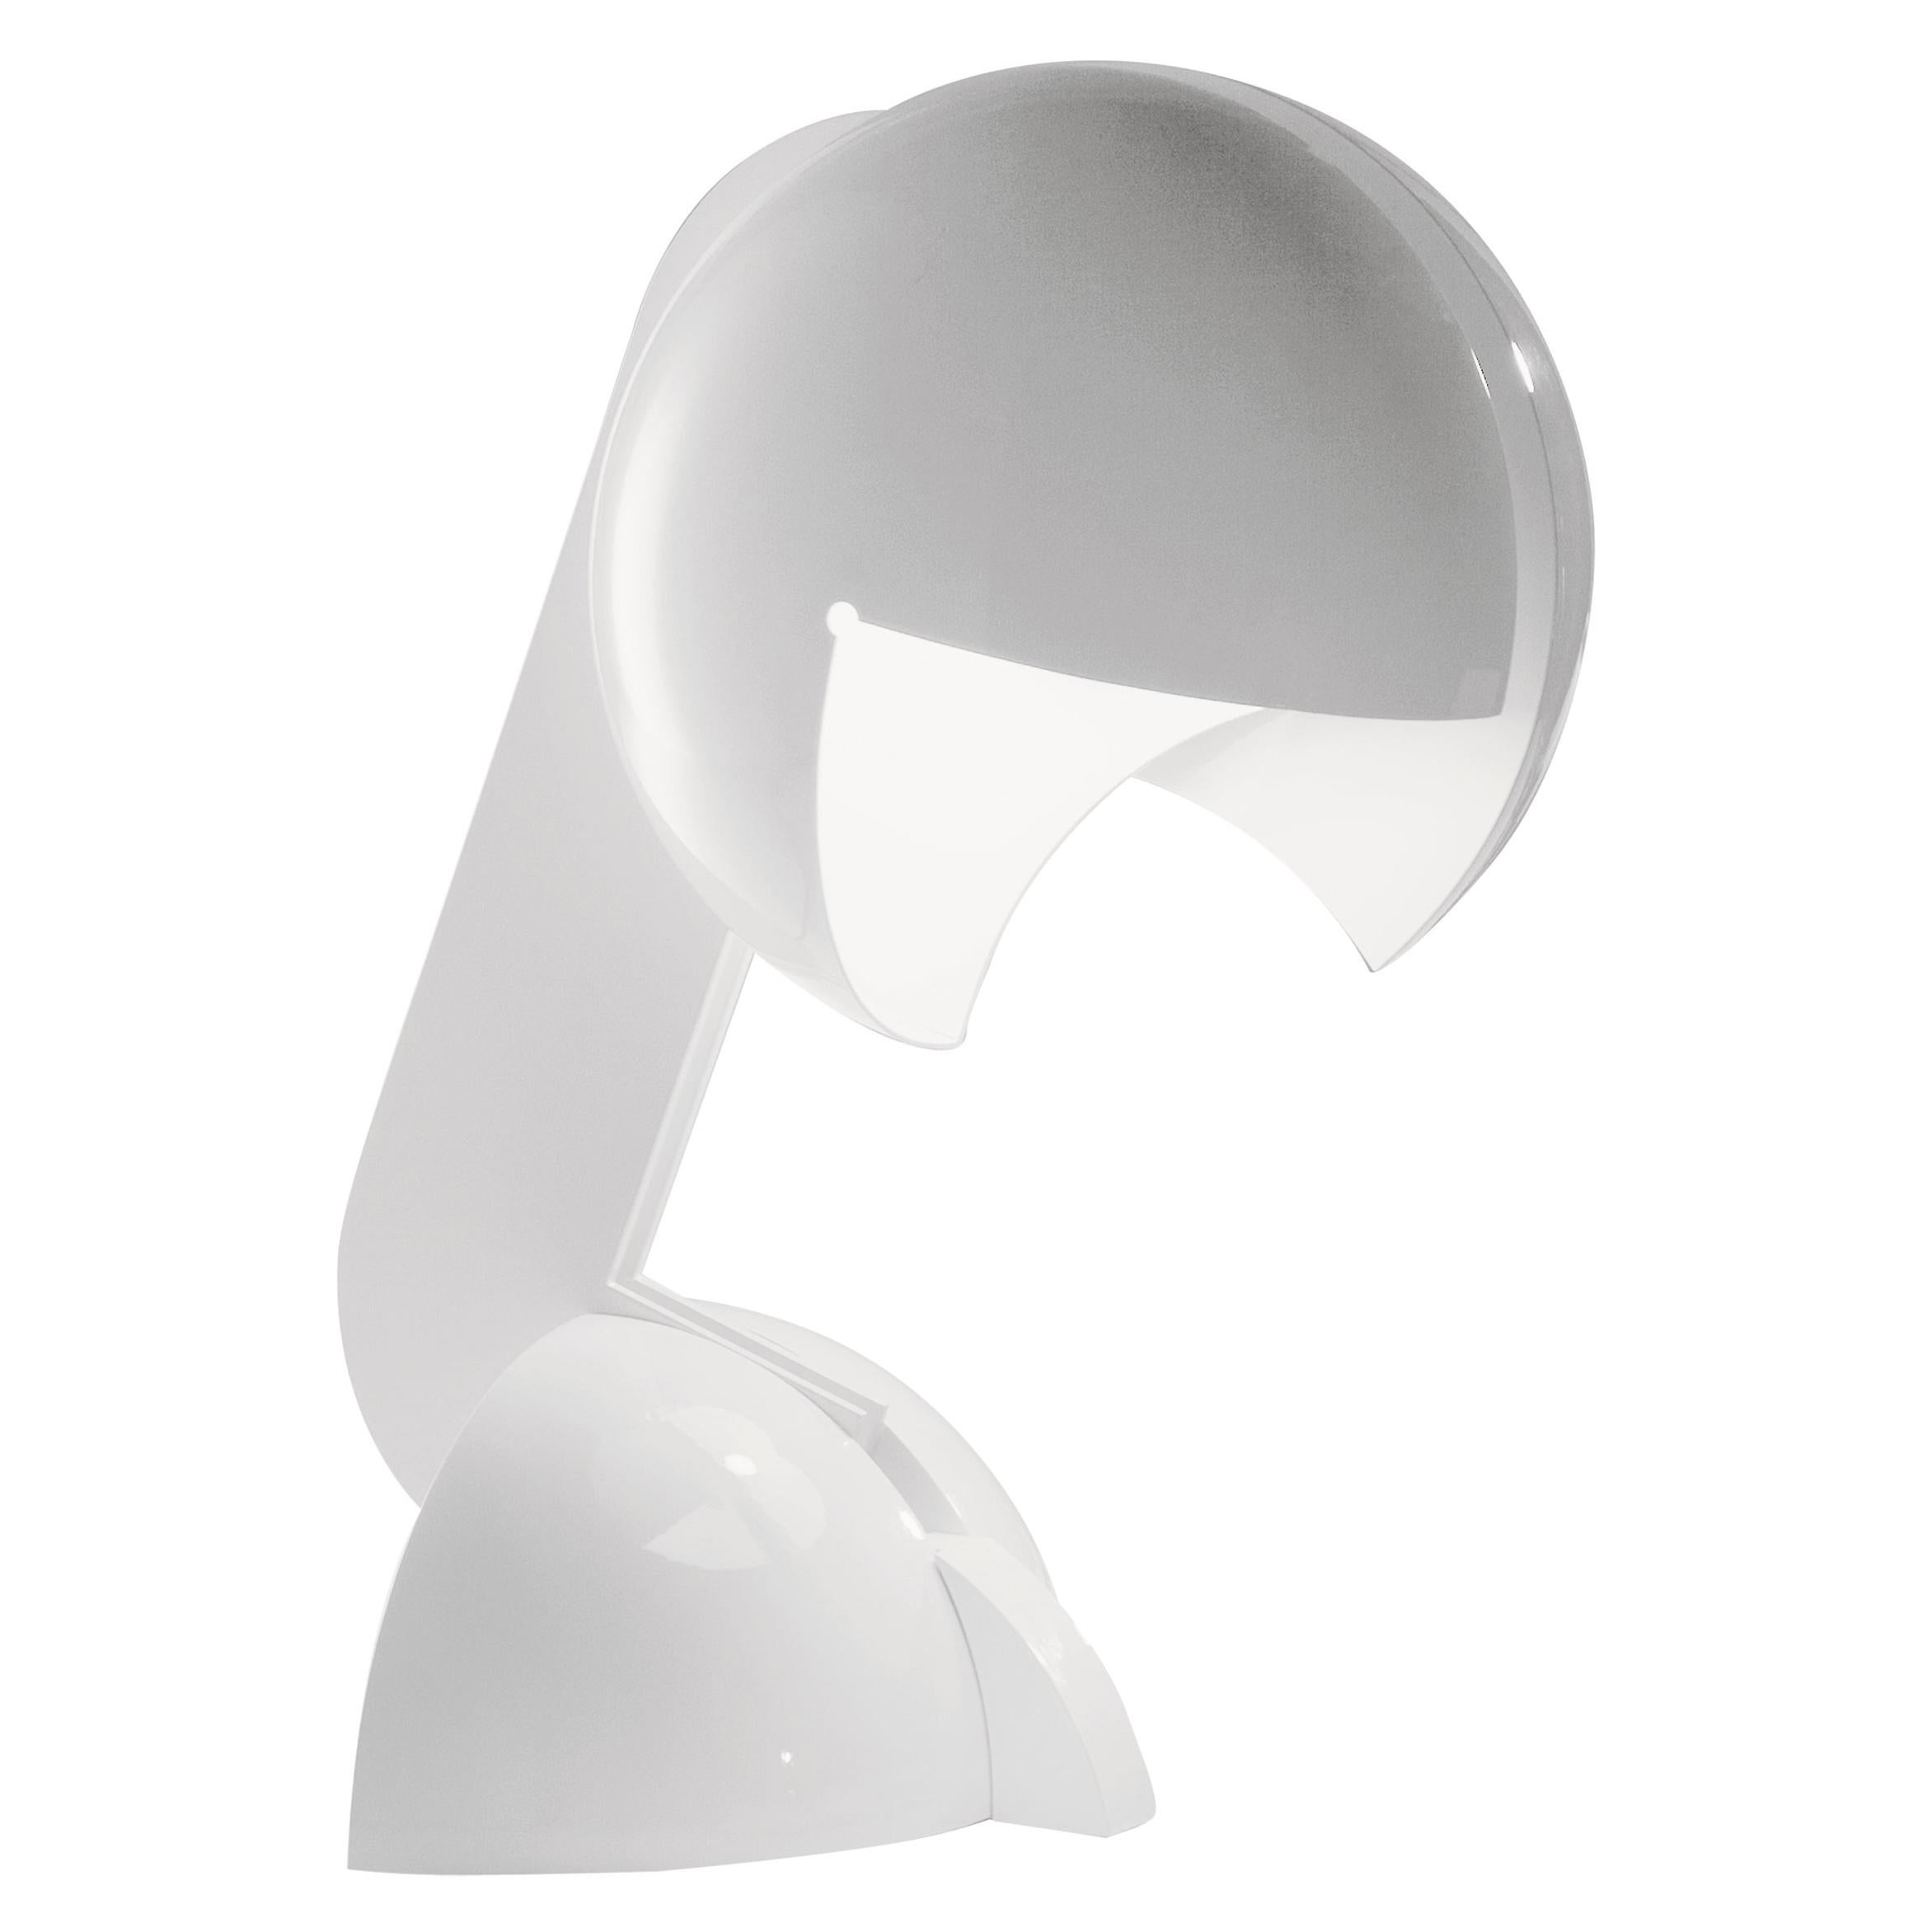 Martinelli Luce Ruspa 633 Table Lamp in White with One Arm by Gae Aulenti